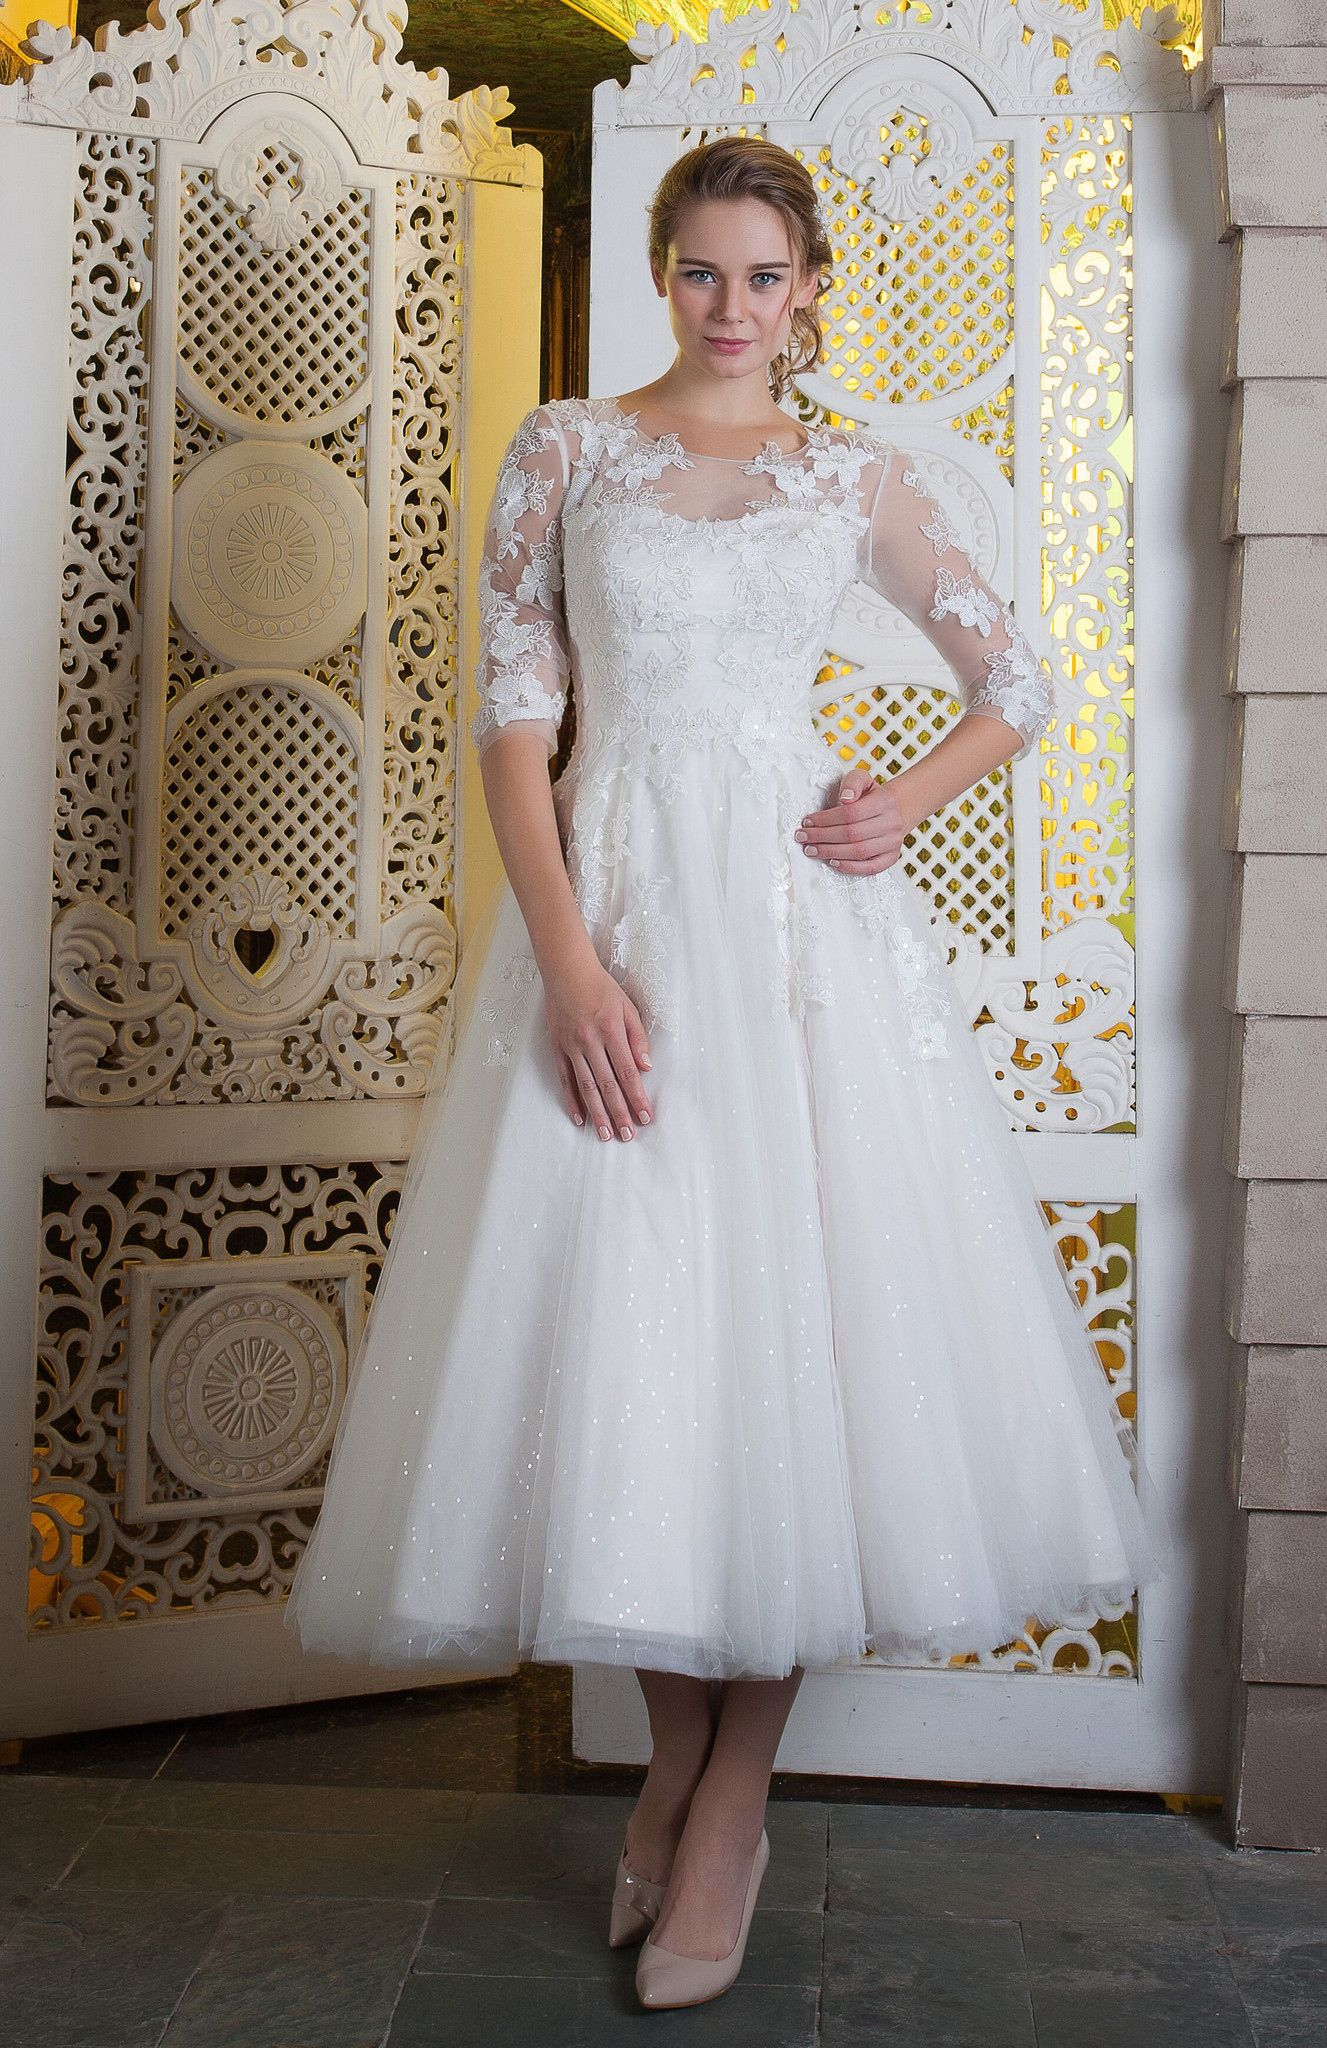 Awesome 50th Wedding Anniversary Dresses Check More At Http Svesty Com 50th Wedding Annive Tea Length Wedding Dress Wedding Dresses Knee Length Wedding Dress,Stylish Wedding Party Wear Dresses For Womens